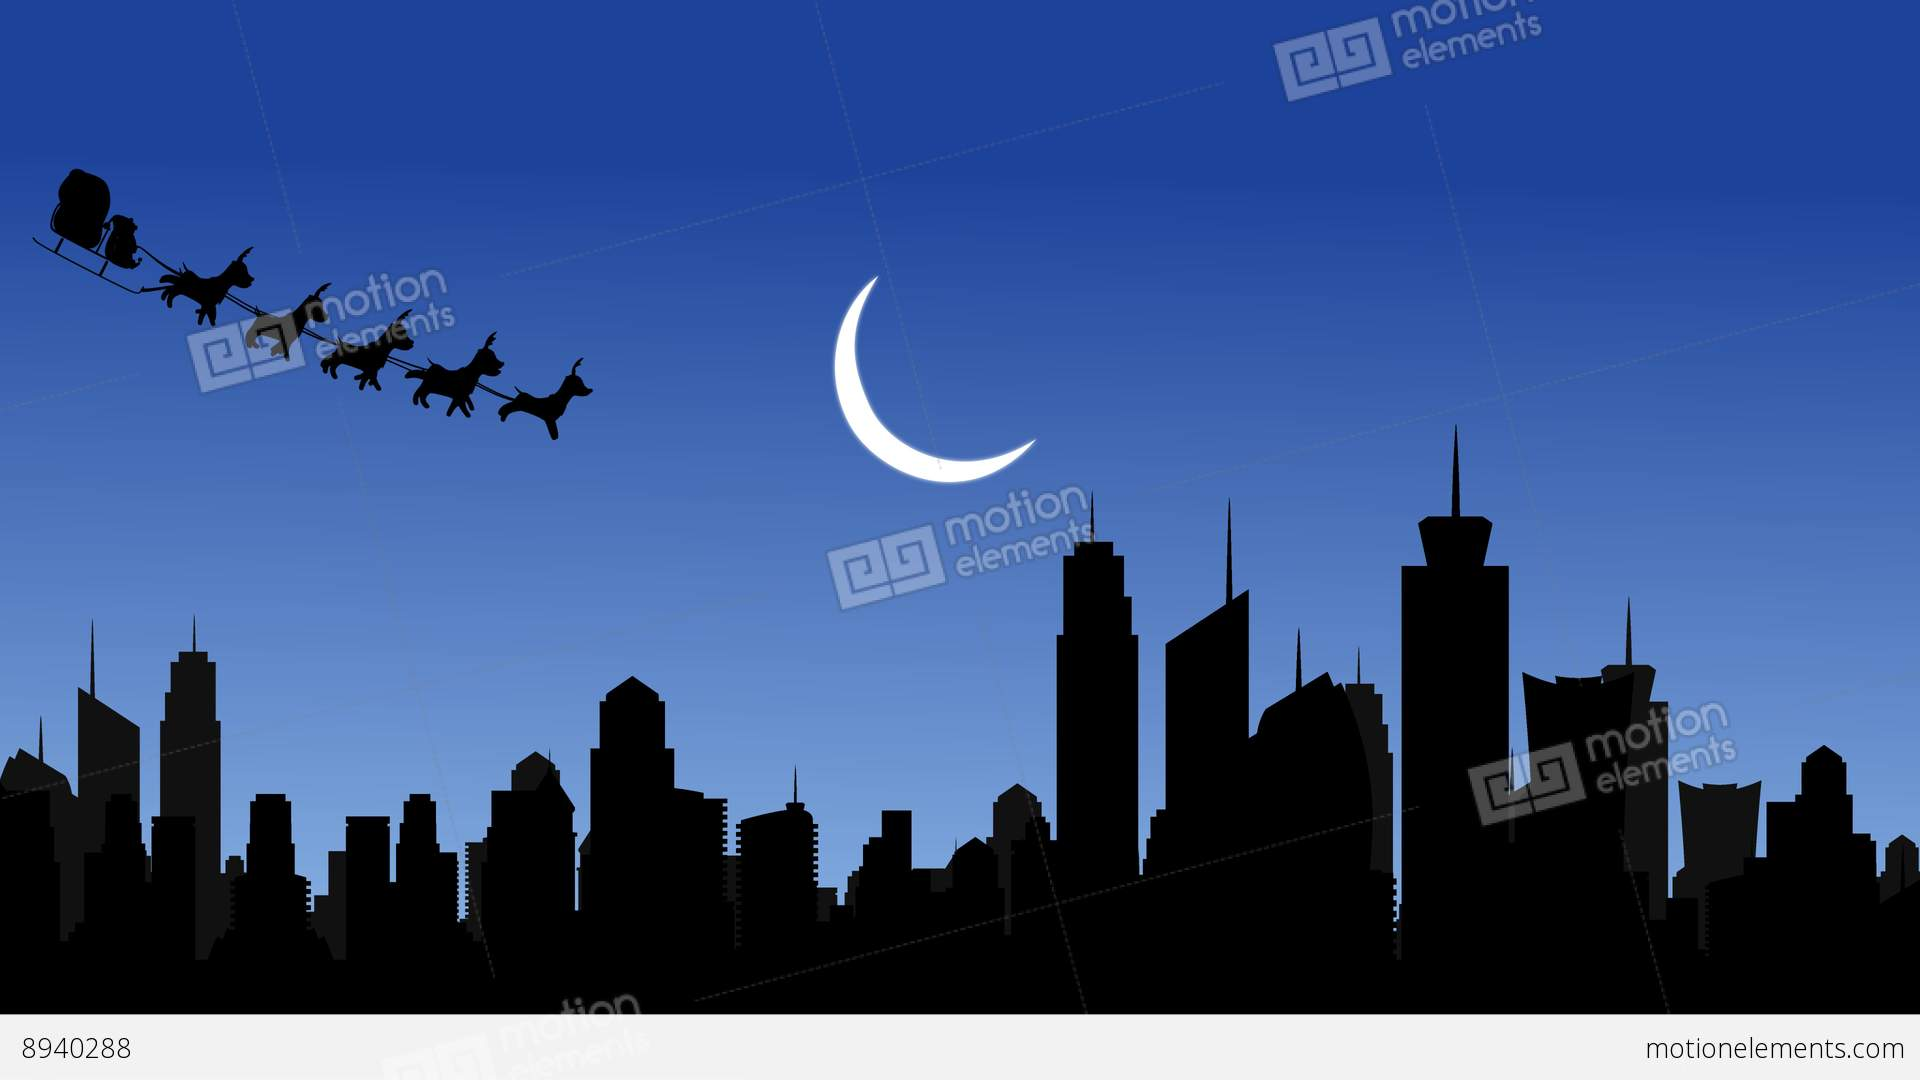 And Flying Santa Sleigh By Reindeer Over City After Effects Template ...